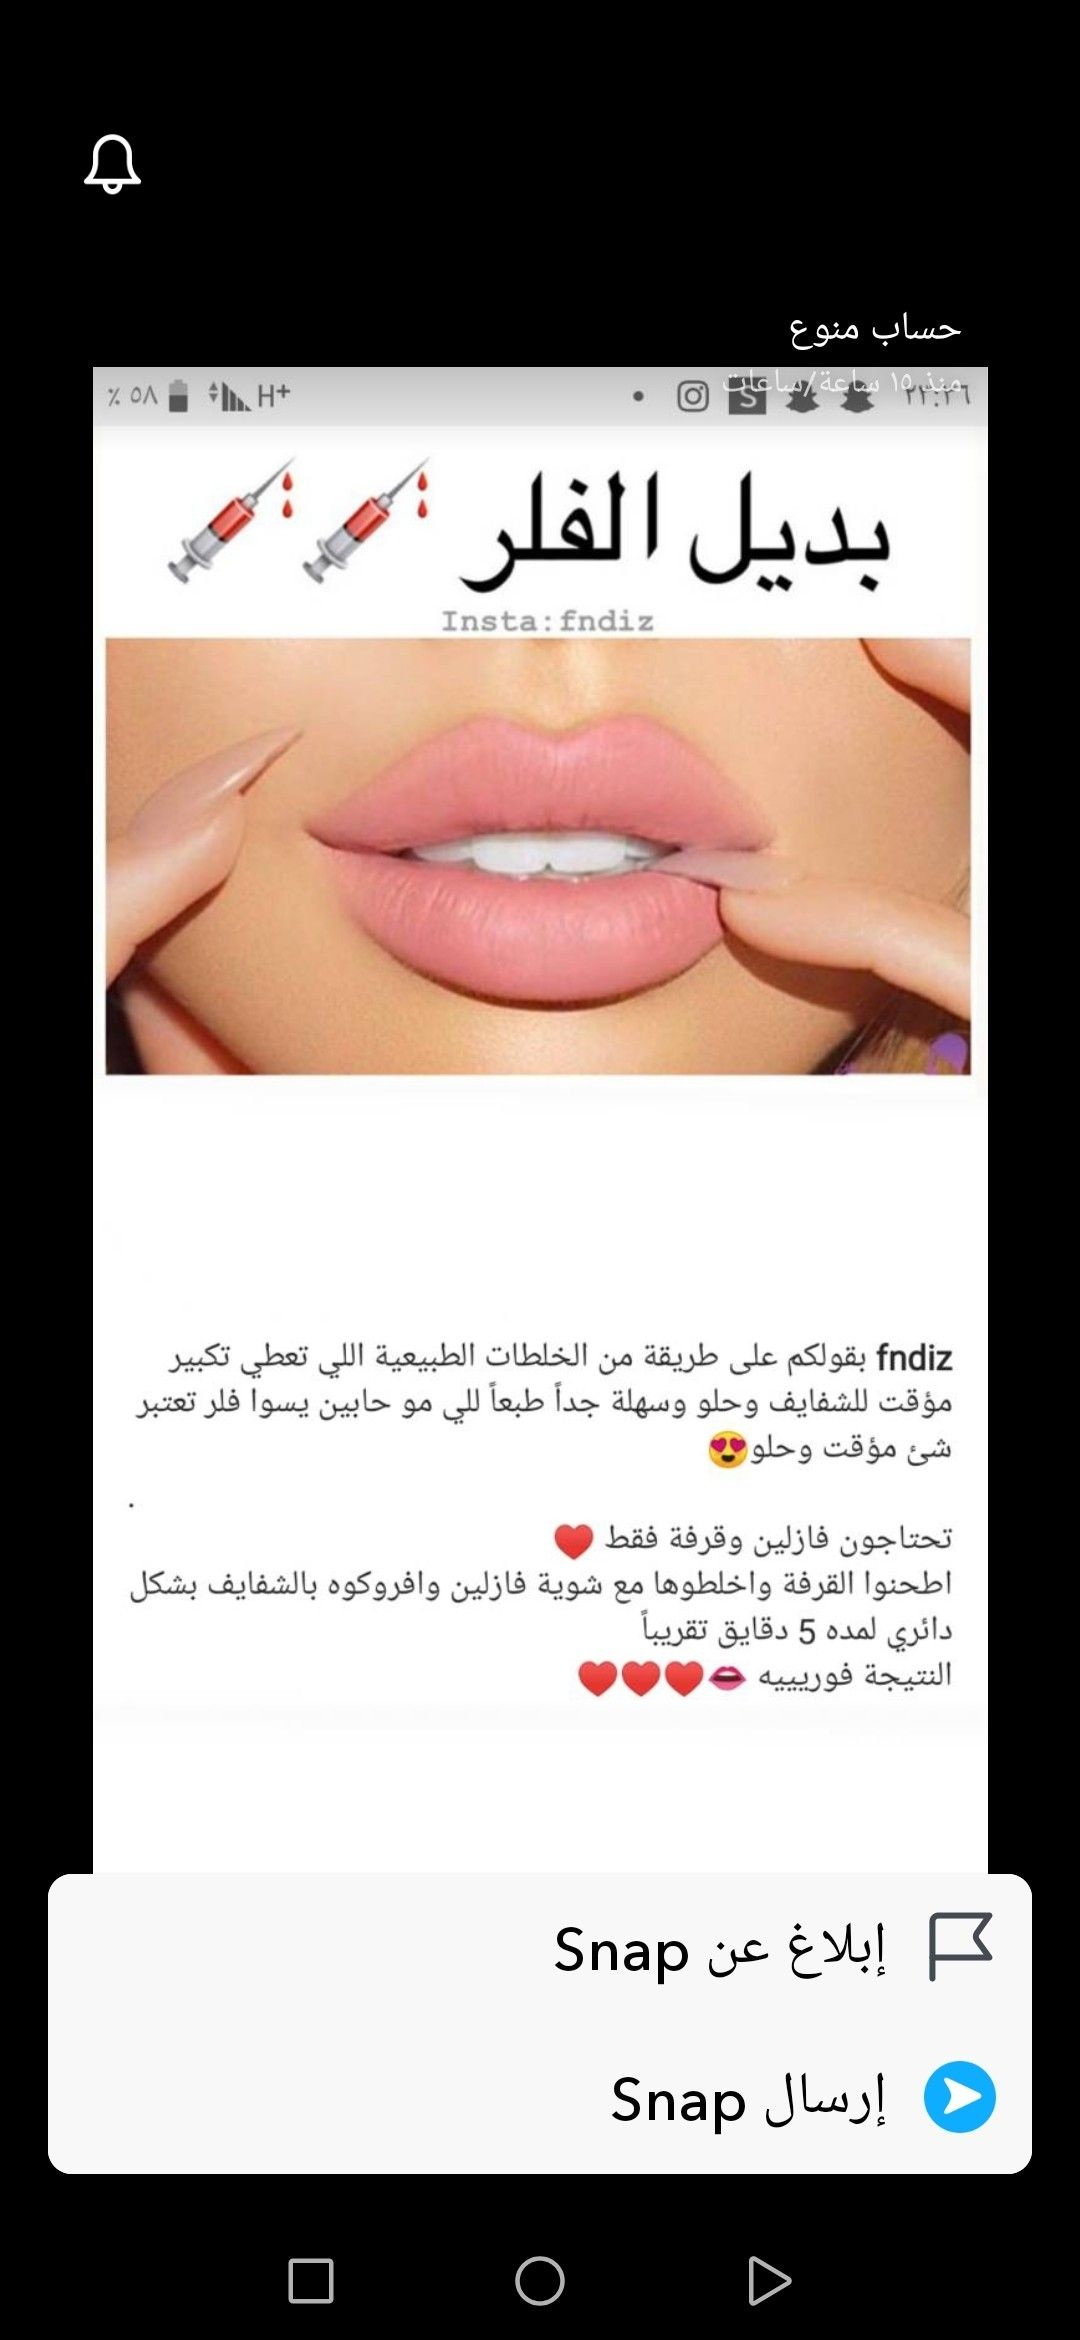 Pin By الهنوف On خلطات جمال عنايه In 2020 Beauty Care Routine Skin Care Masks Oil For Stretch Marks